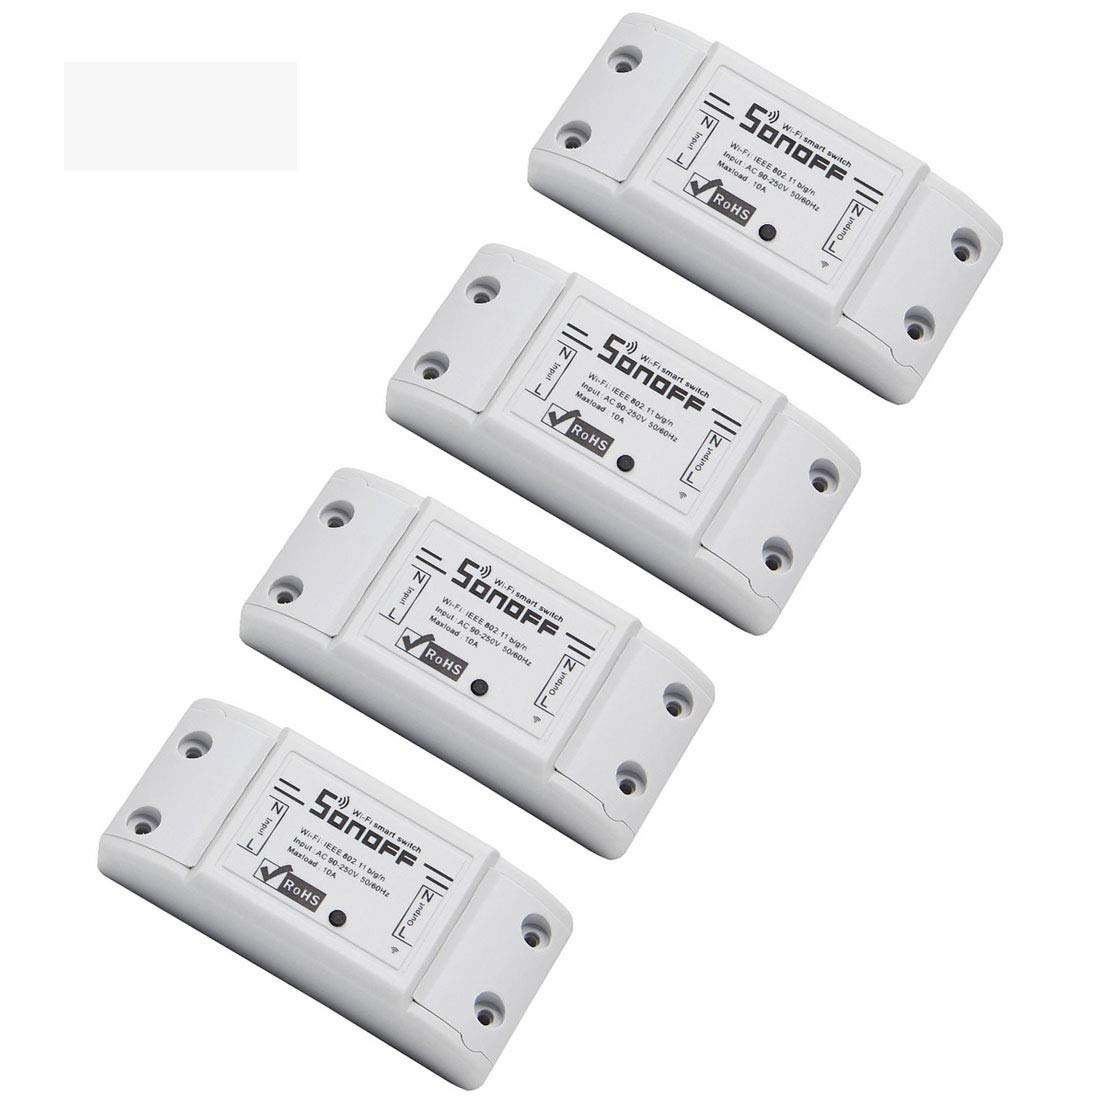 Sonoff Basic Smart Remote Control Wifi Switch Compatible with Alexa DIY Your Home via Iphone Android App (Sonoff 4Pack)